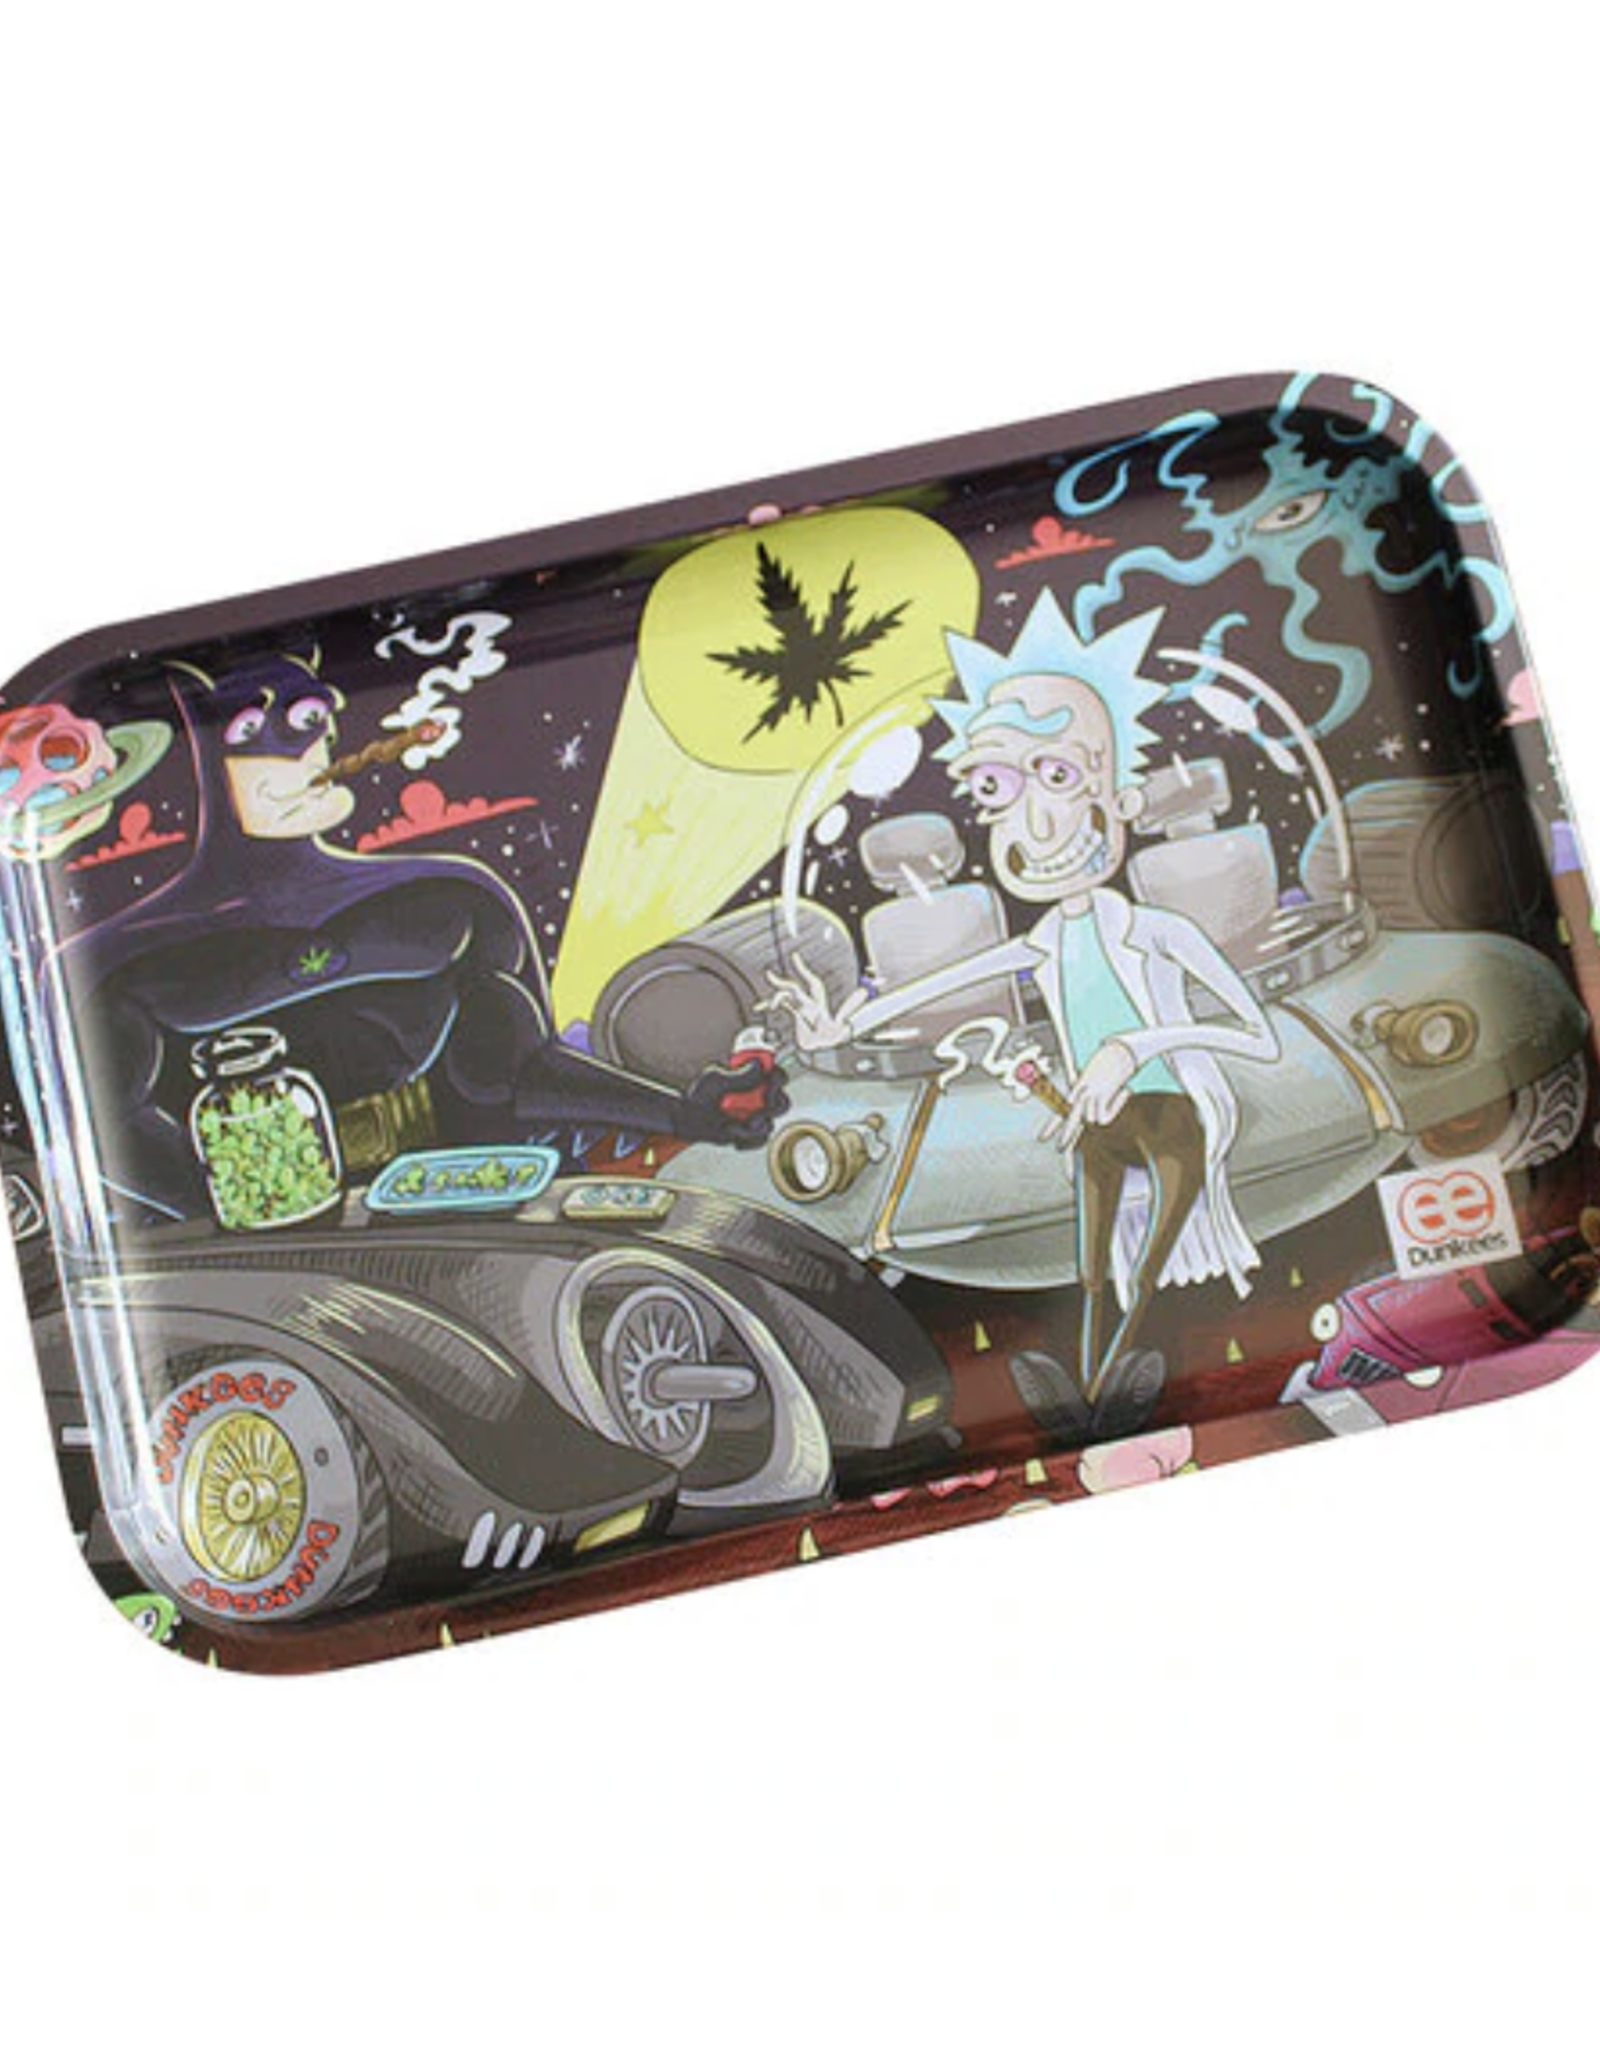 """Dunkees 13"""" x 9"""" Rolling Tray - Smoke Signals"""